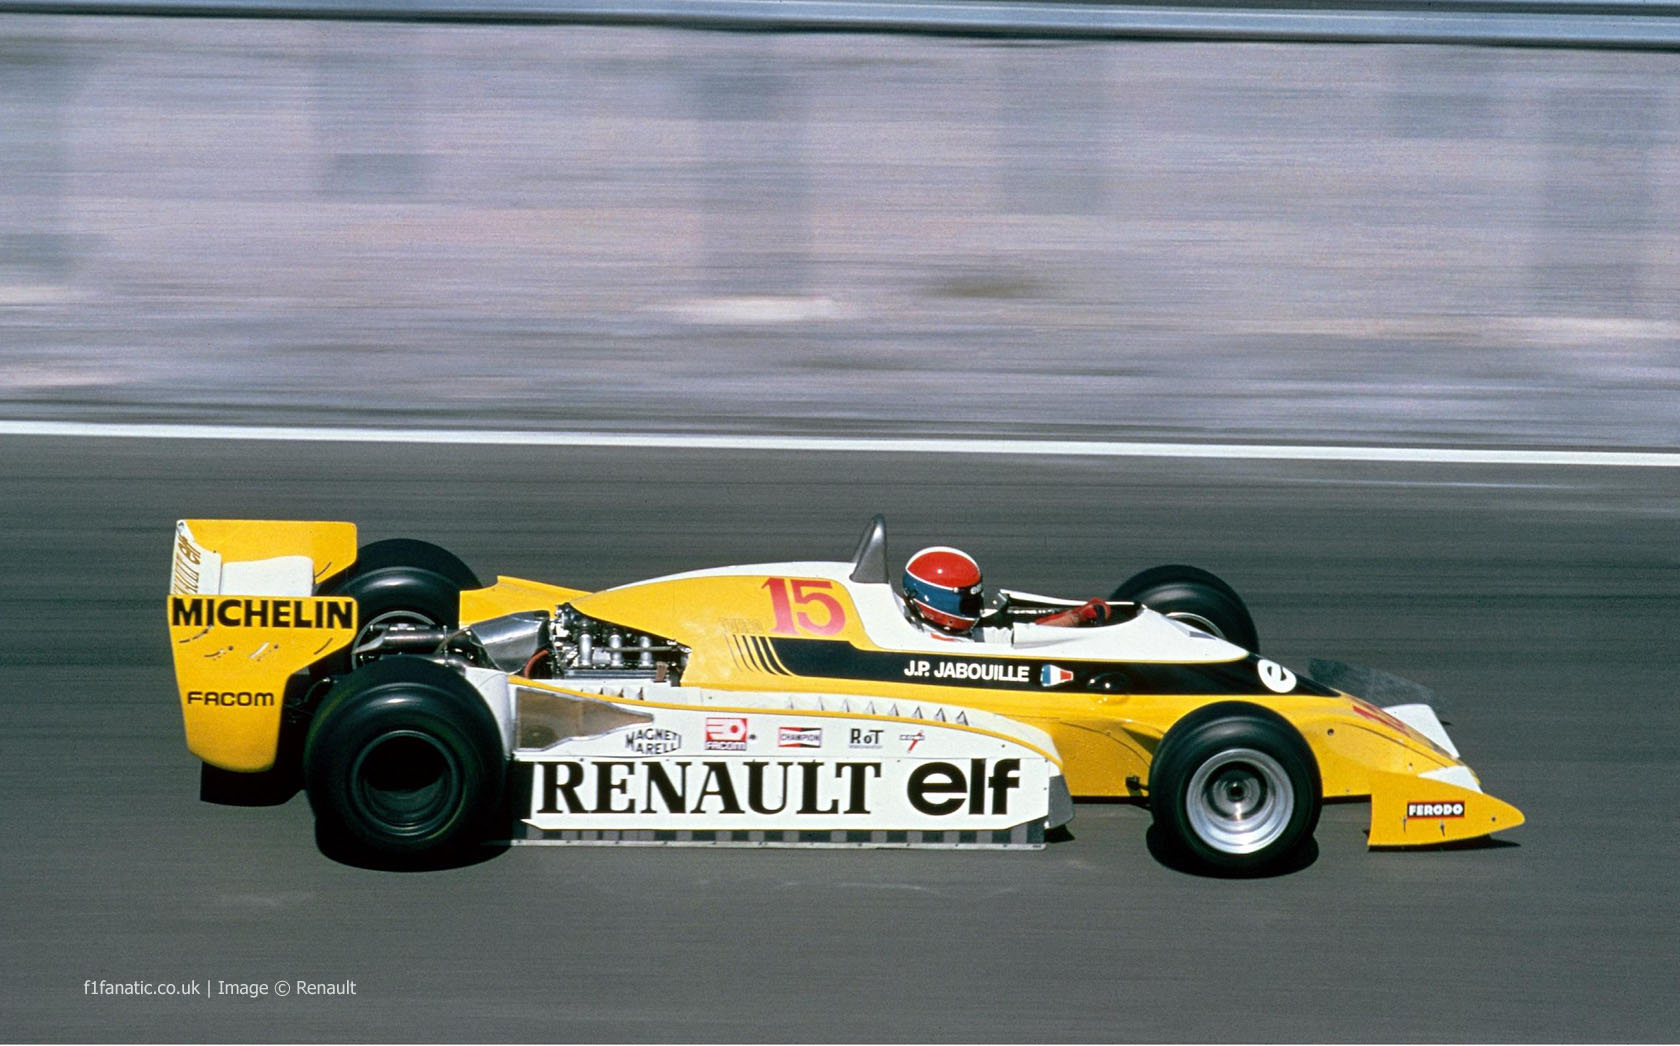 jean pierre jabouille renault dijon 1979 f1 fanatic. Black Bedroom Furniture Sets. Home Design Ideas